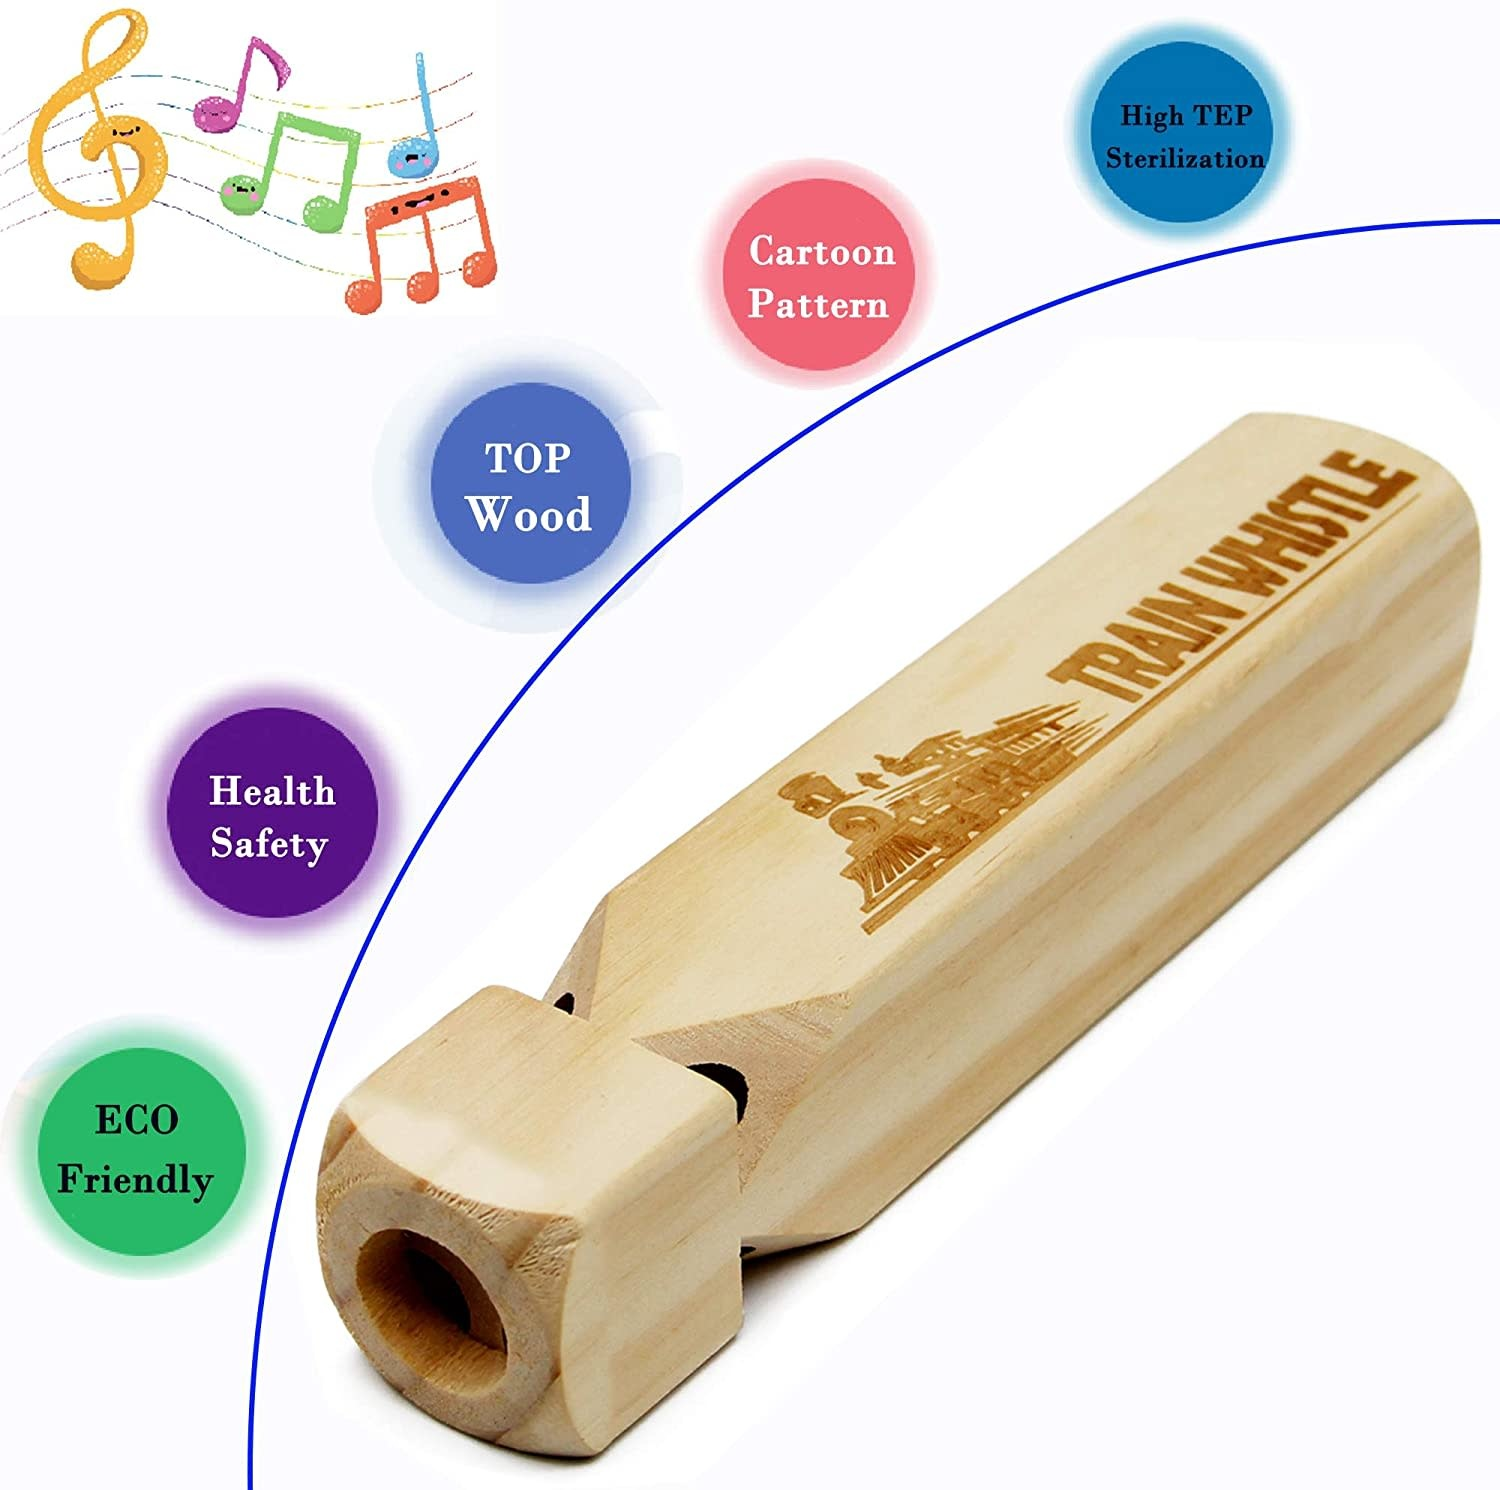 3079965 - WHISTLE WOODEN